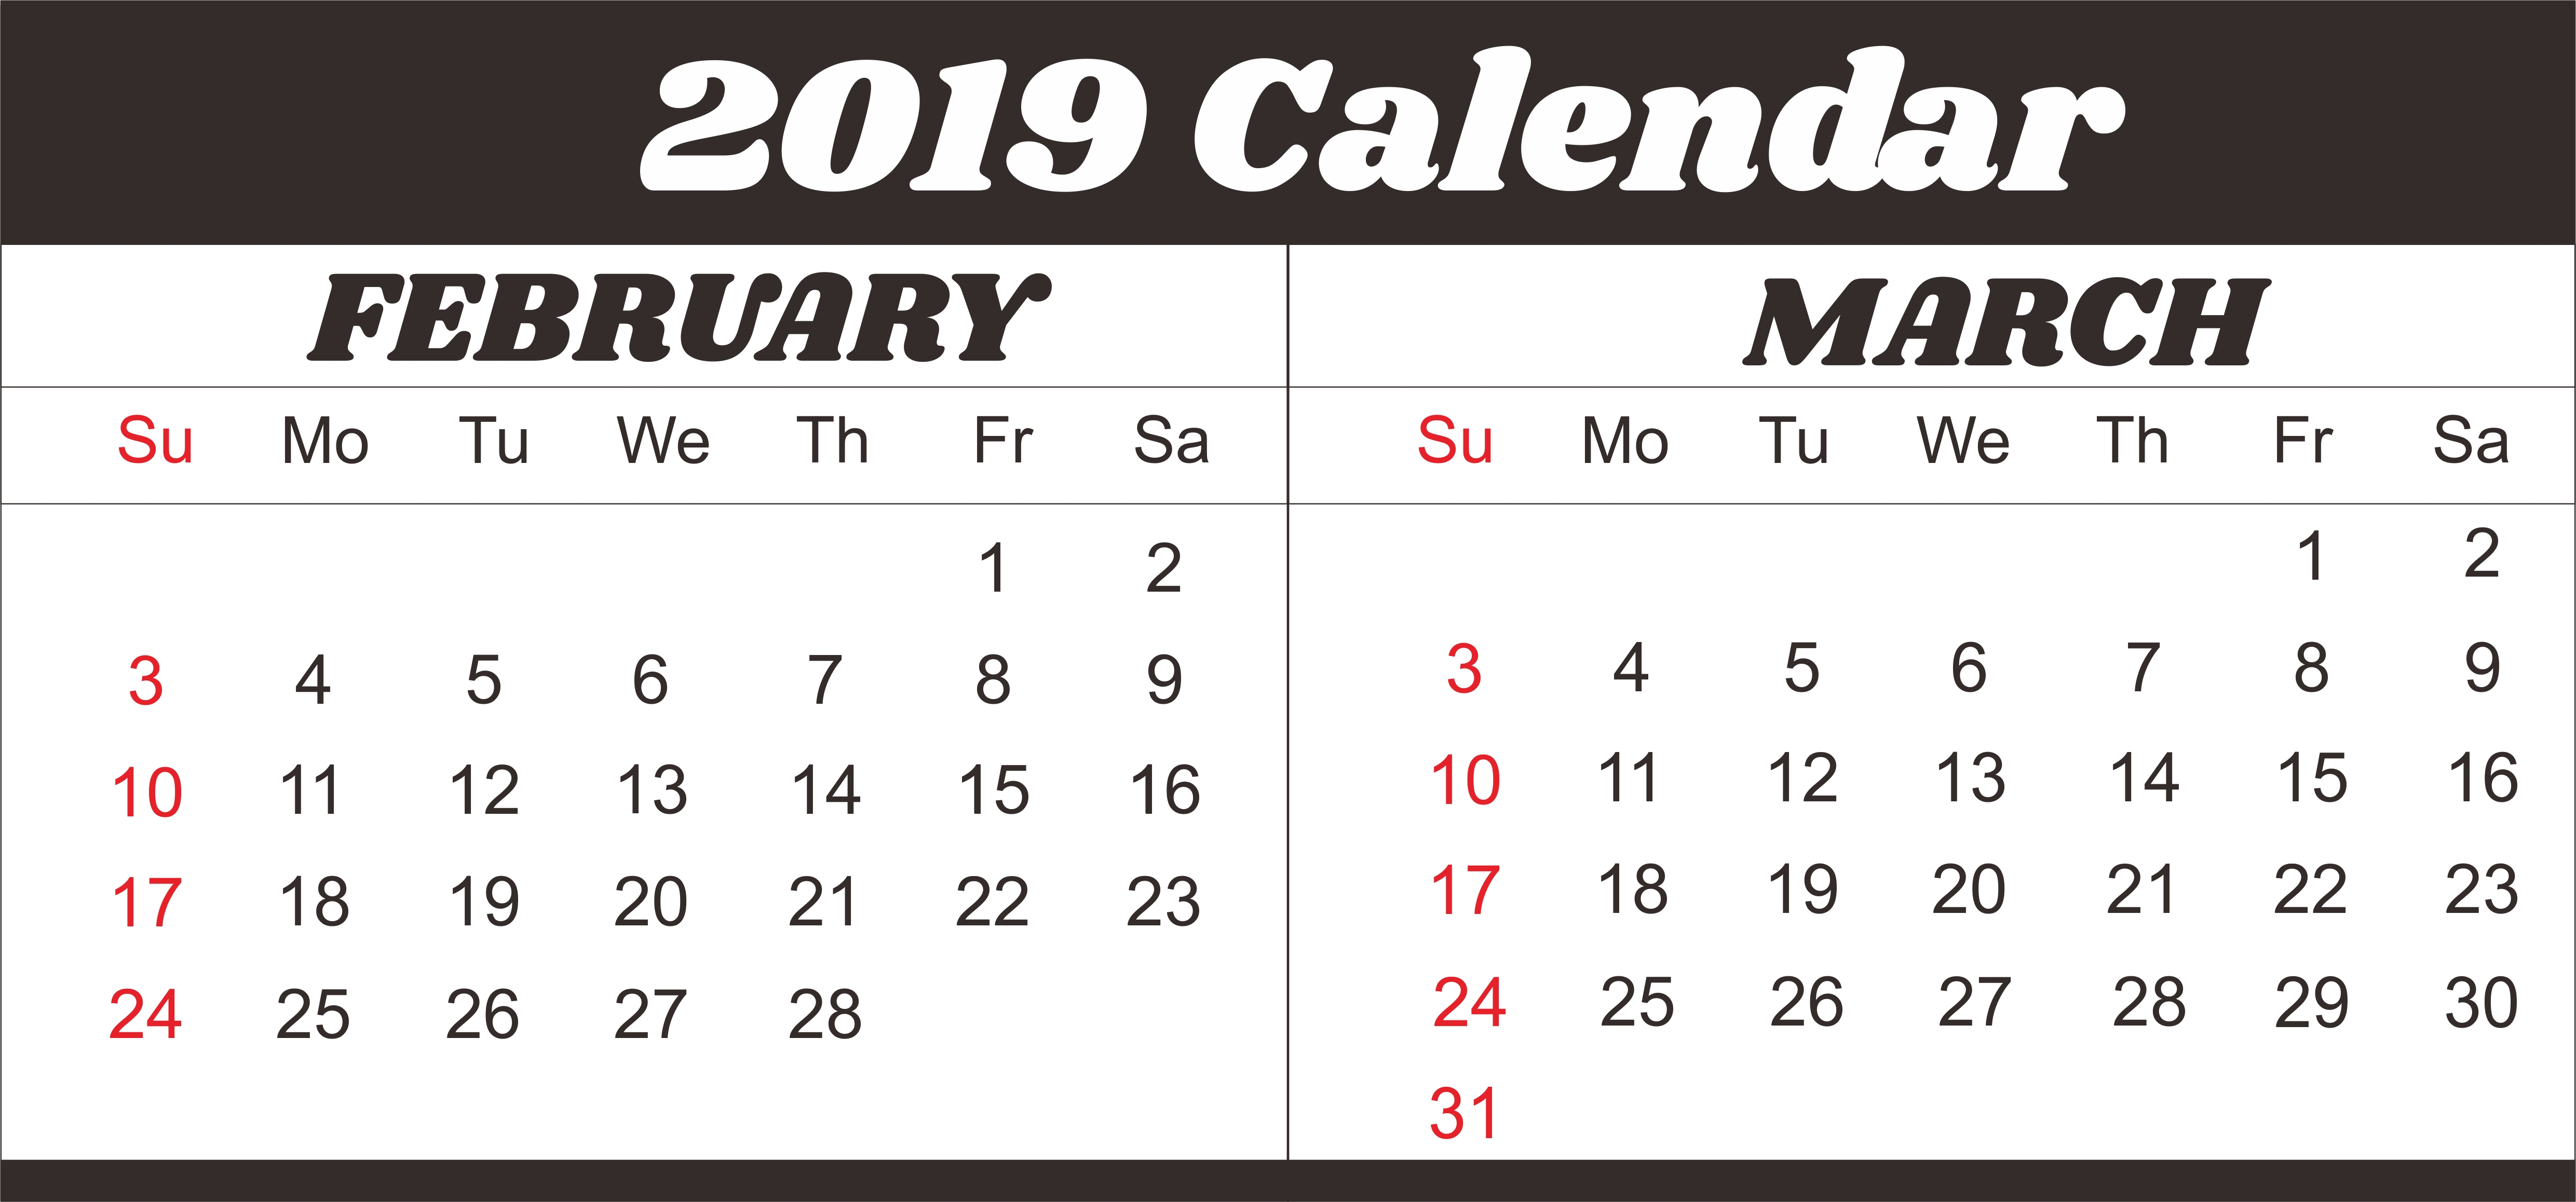 February March 2019 Calendar Template #februarycalendar March 2 2019 Calendar